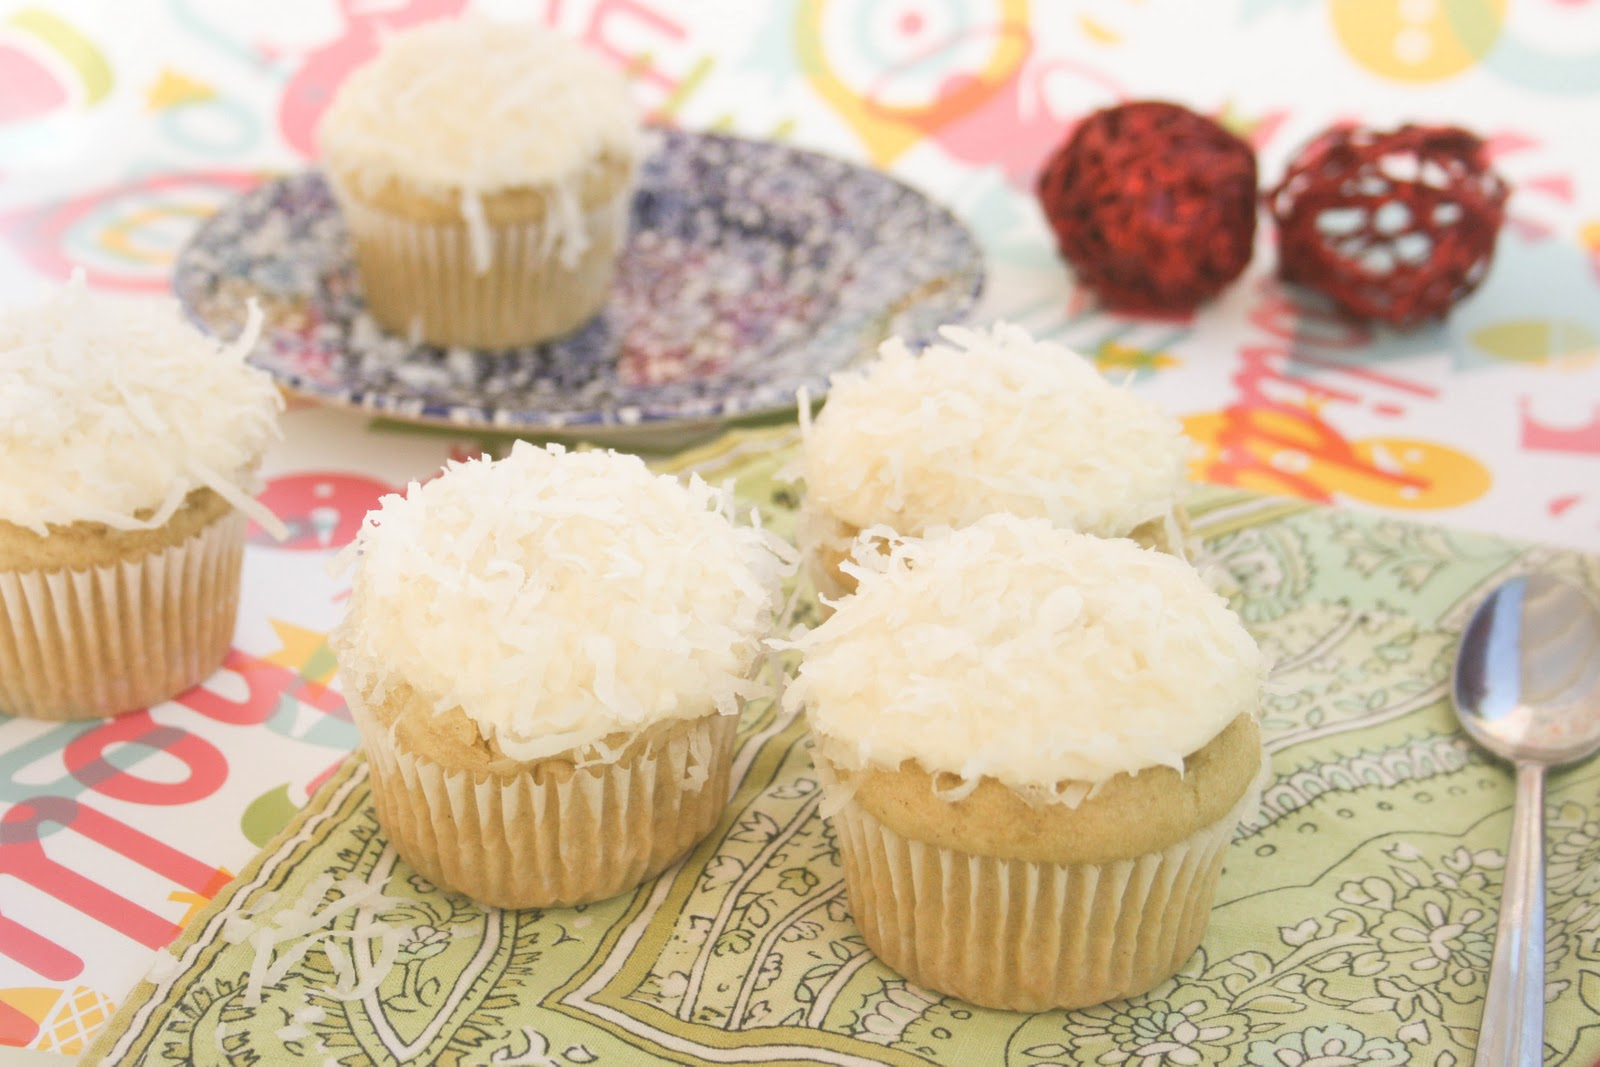 ... vanilla buttercream and then rolled the top of the cupcakes in coconut